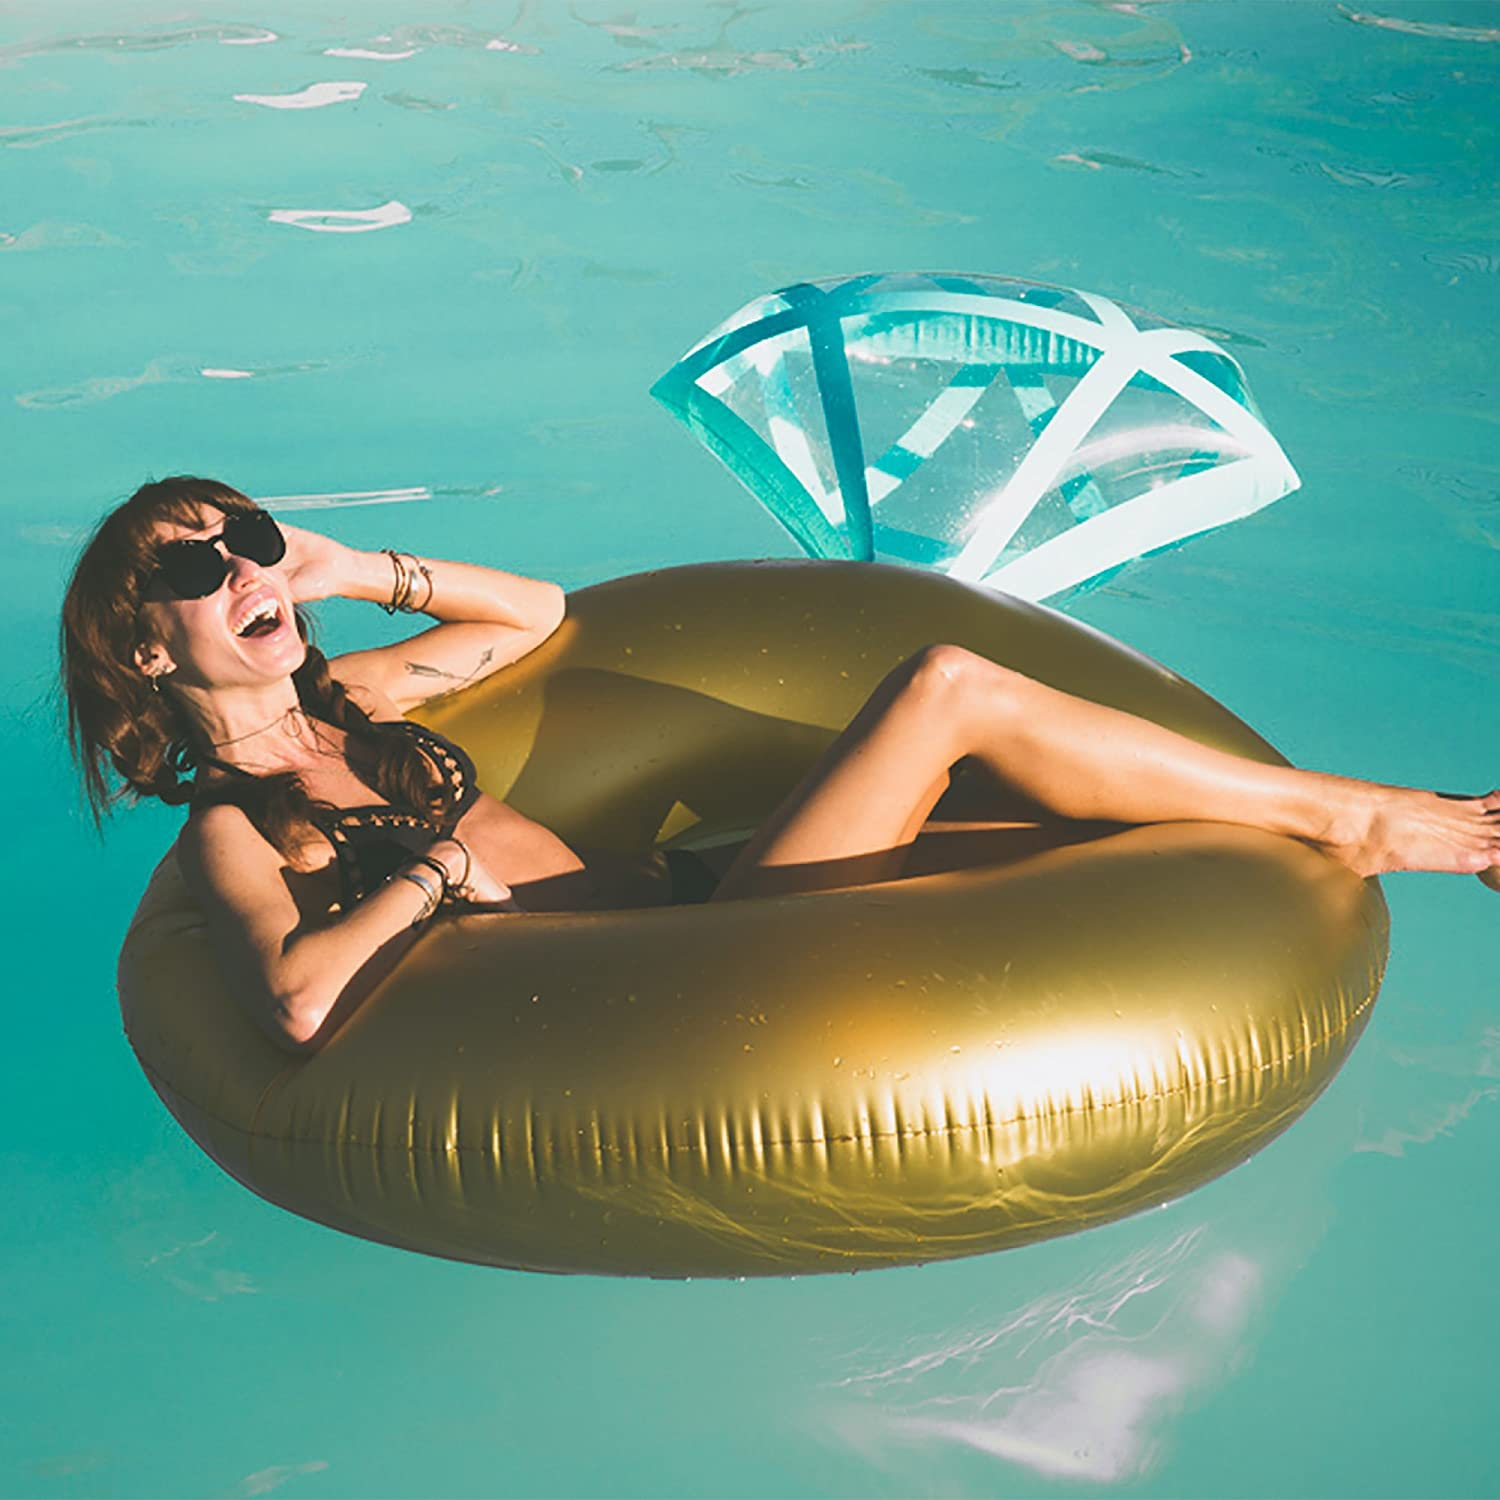 Amazon Fractal Giant Gold Diamond Ring Shape 50 Diameter Inflatable Water Floats For Pool Party Kitchen Dining: Wedding Ring Pool Toy At Reisefeber.org